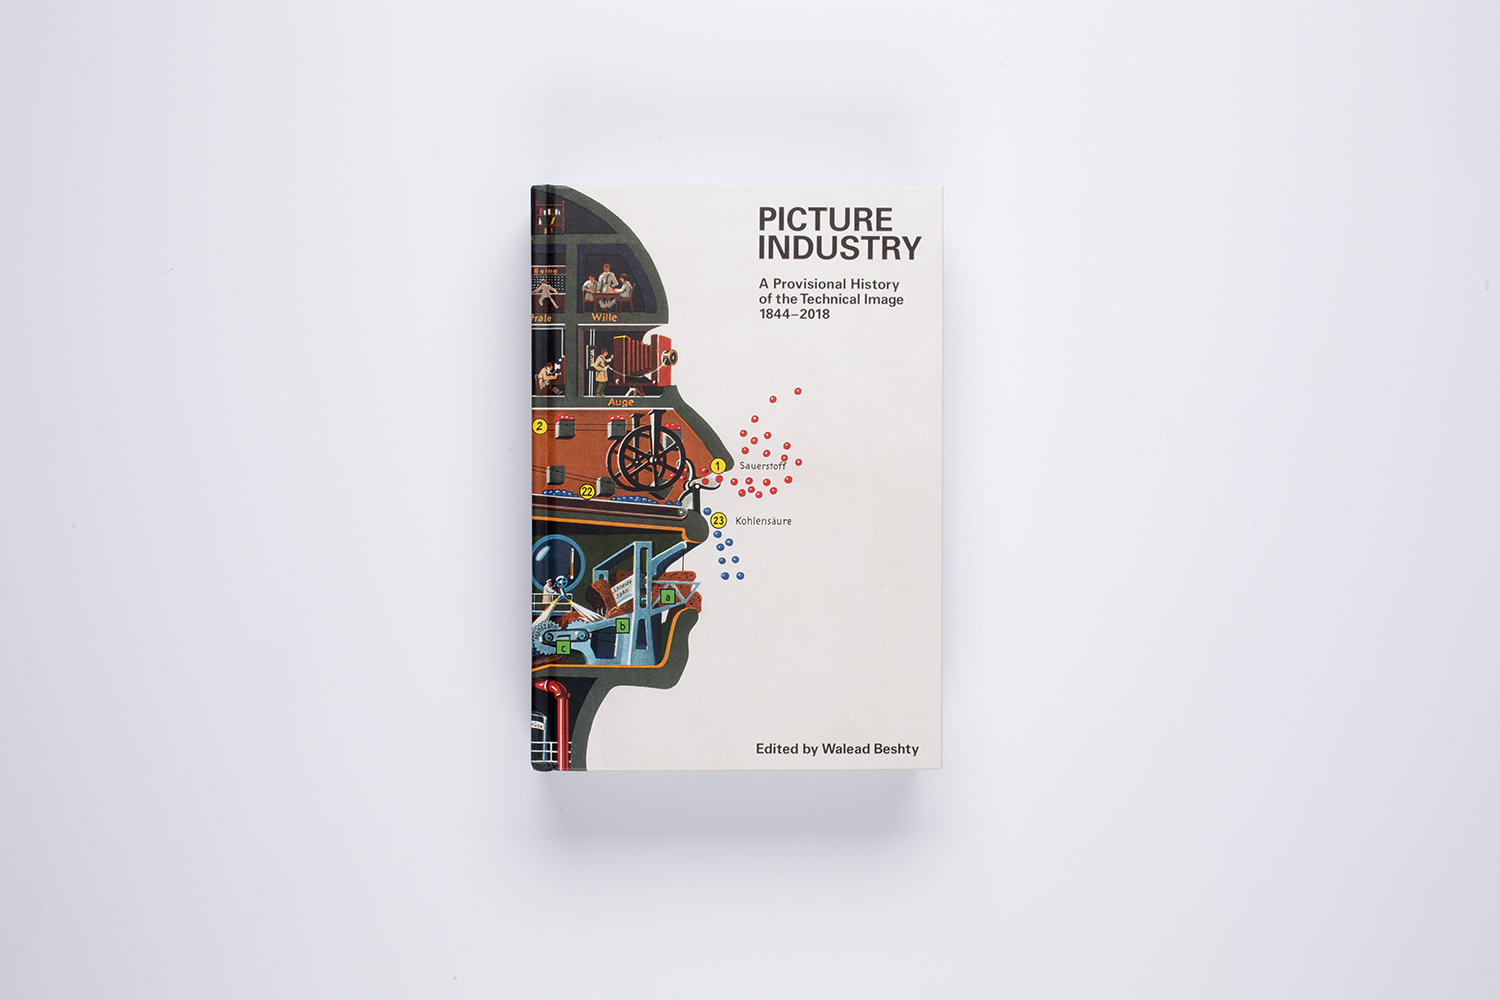 Walead Beshty, ed.,  Picture Industry: A Provisional History of the Technical Image, 1844–2018 , ex. cat. (Zurich: JRP|Ringier, CCS Bard, and Luma Foundation, 2018), with a foreword by Maja Hoffmann and Tom Eccles.